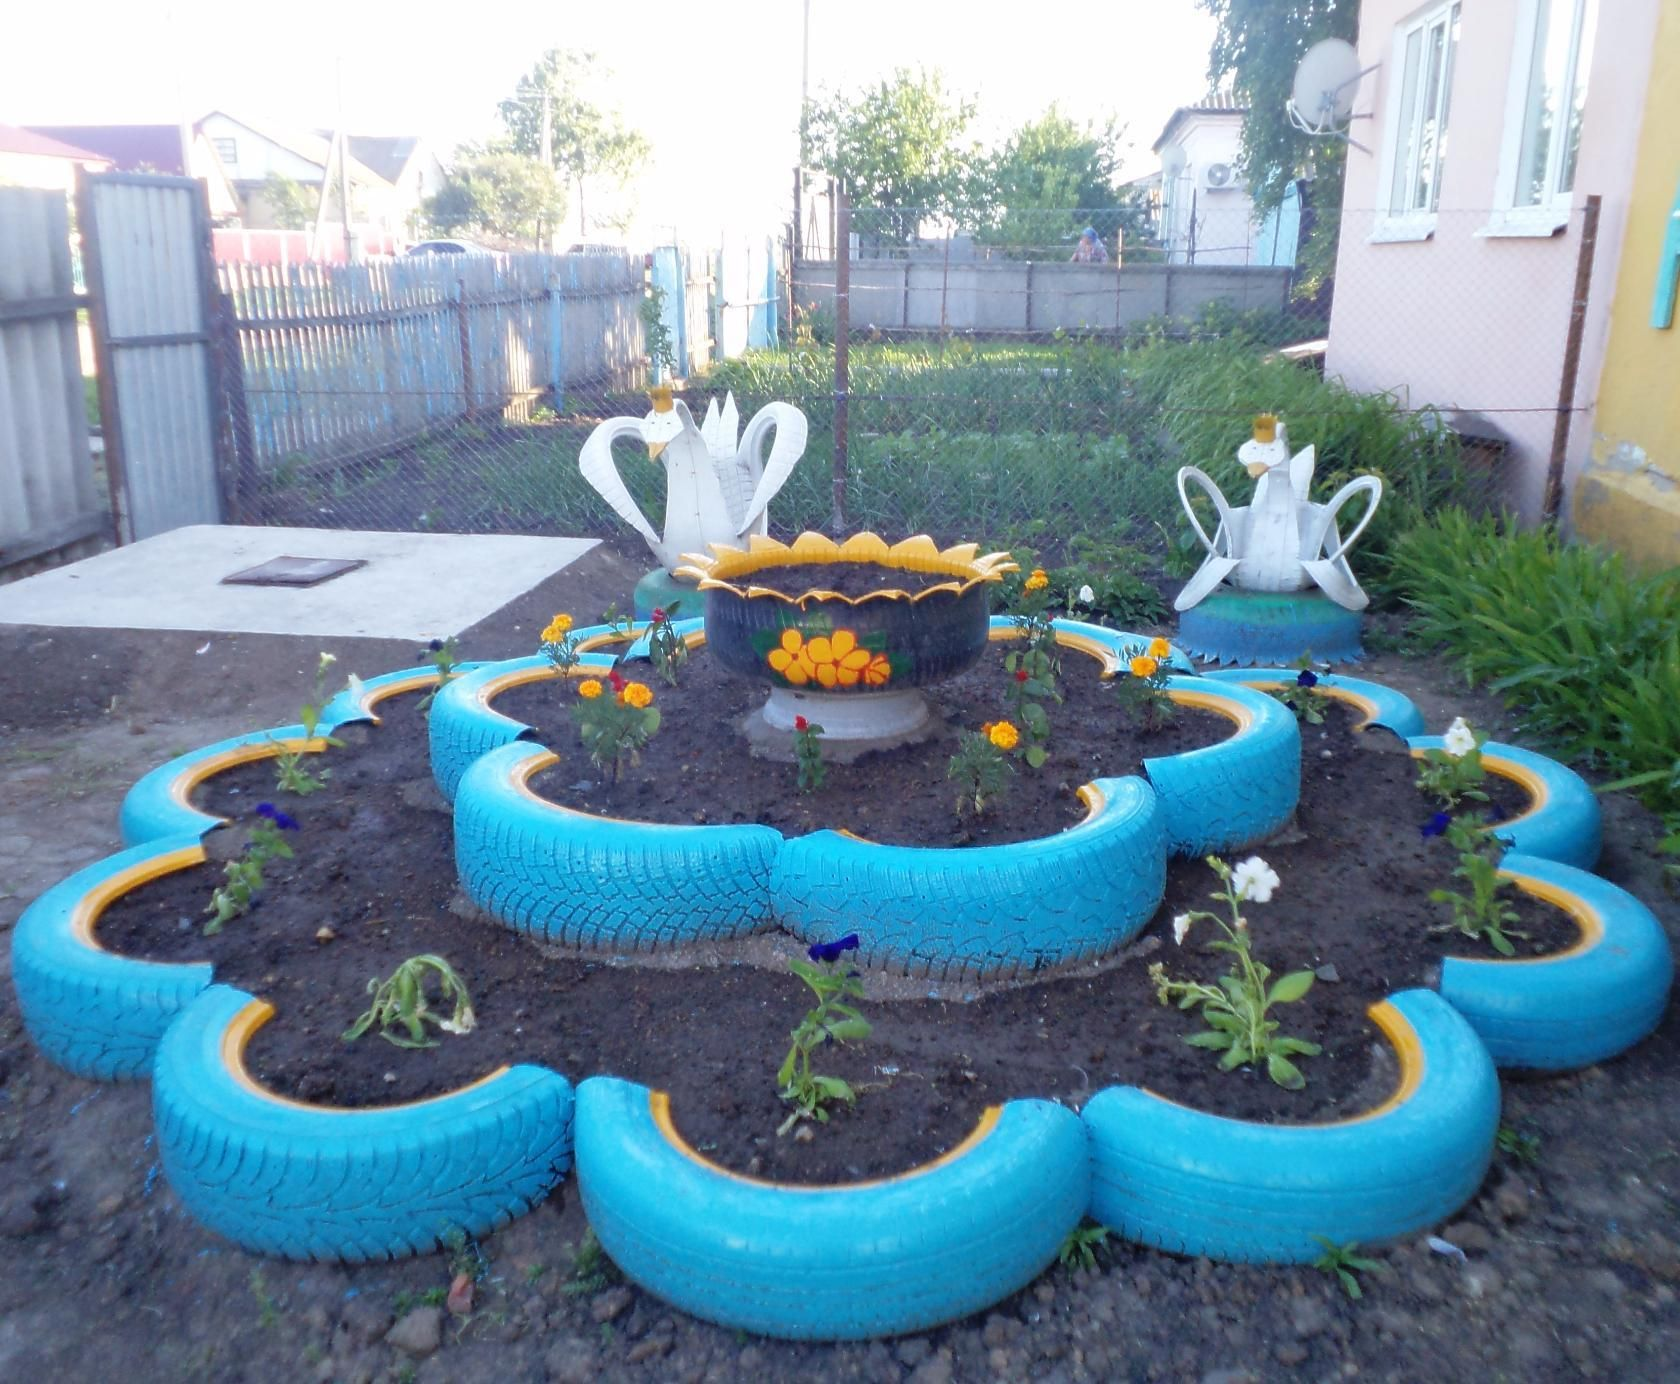 A swan from a tire with its own hands will decorate any yard